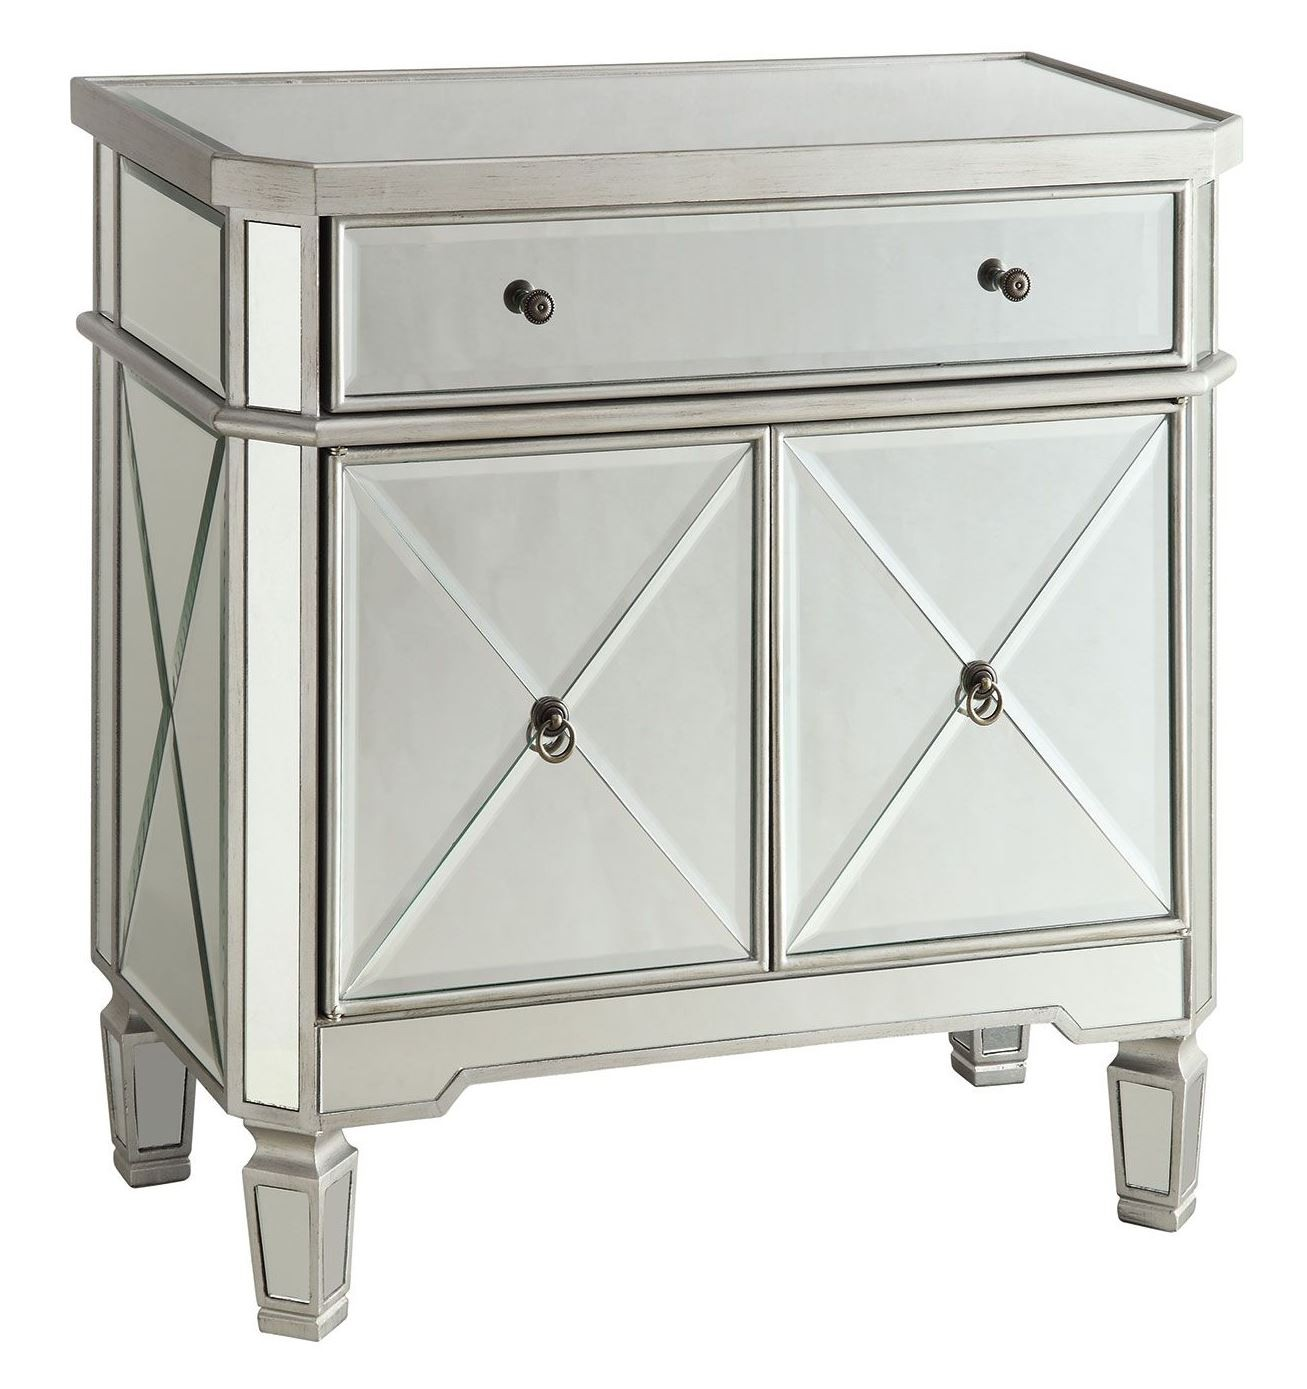 Mirrored Drawer Wine Cabinet from Coaster (102596